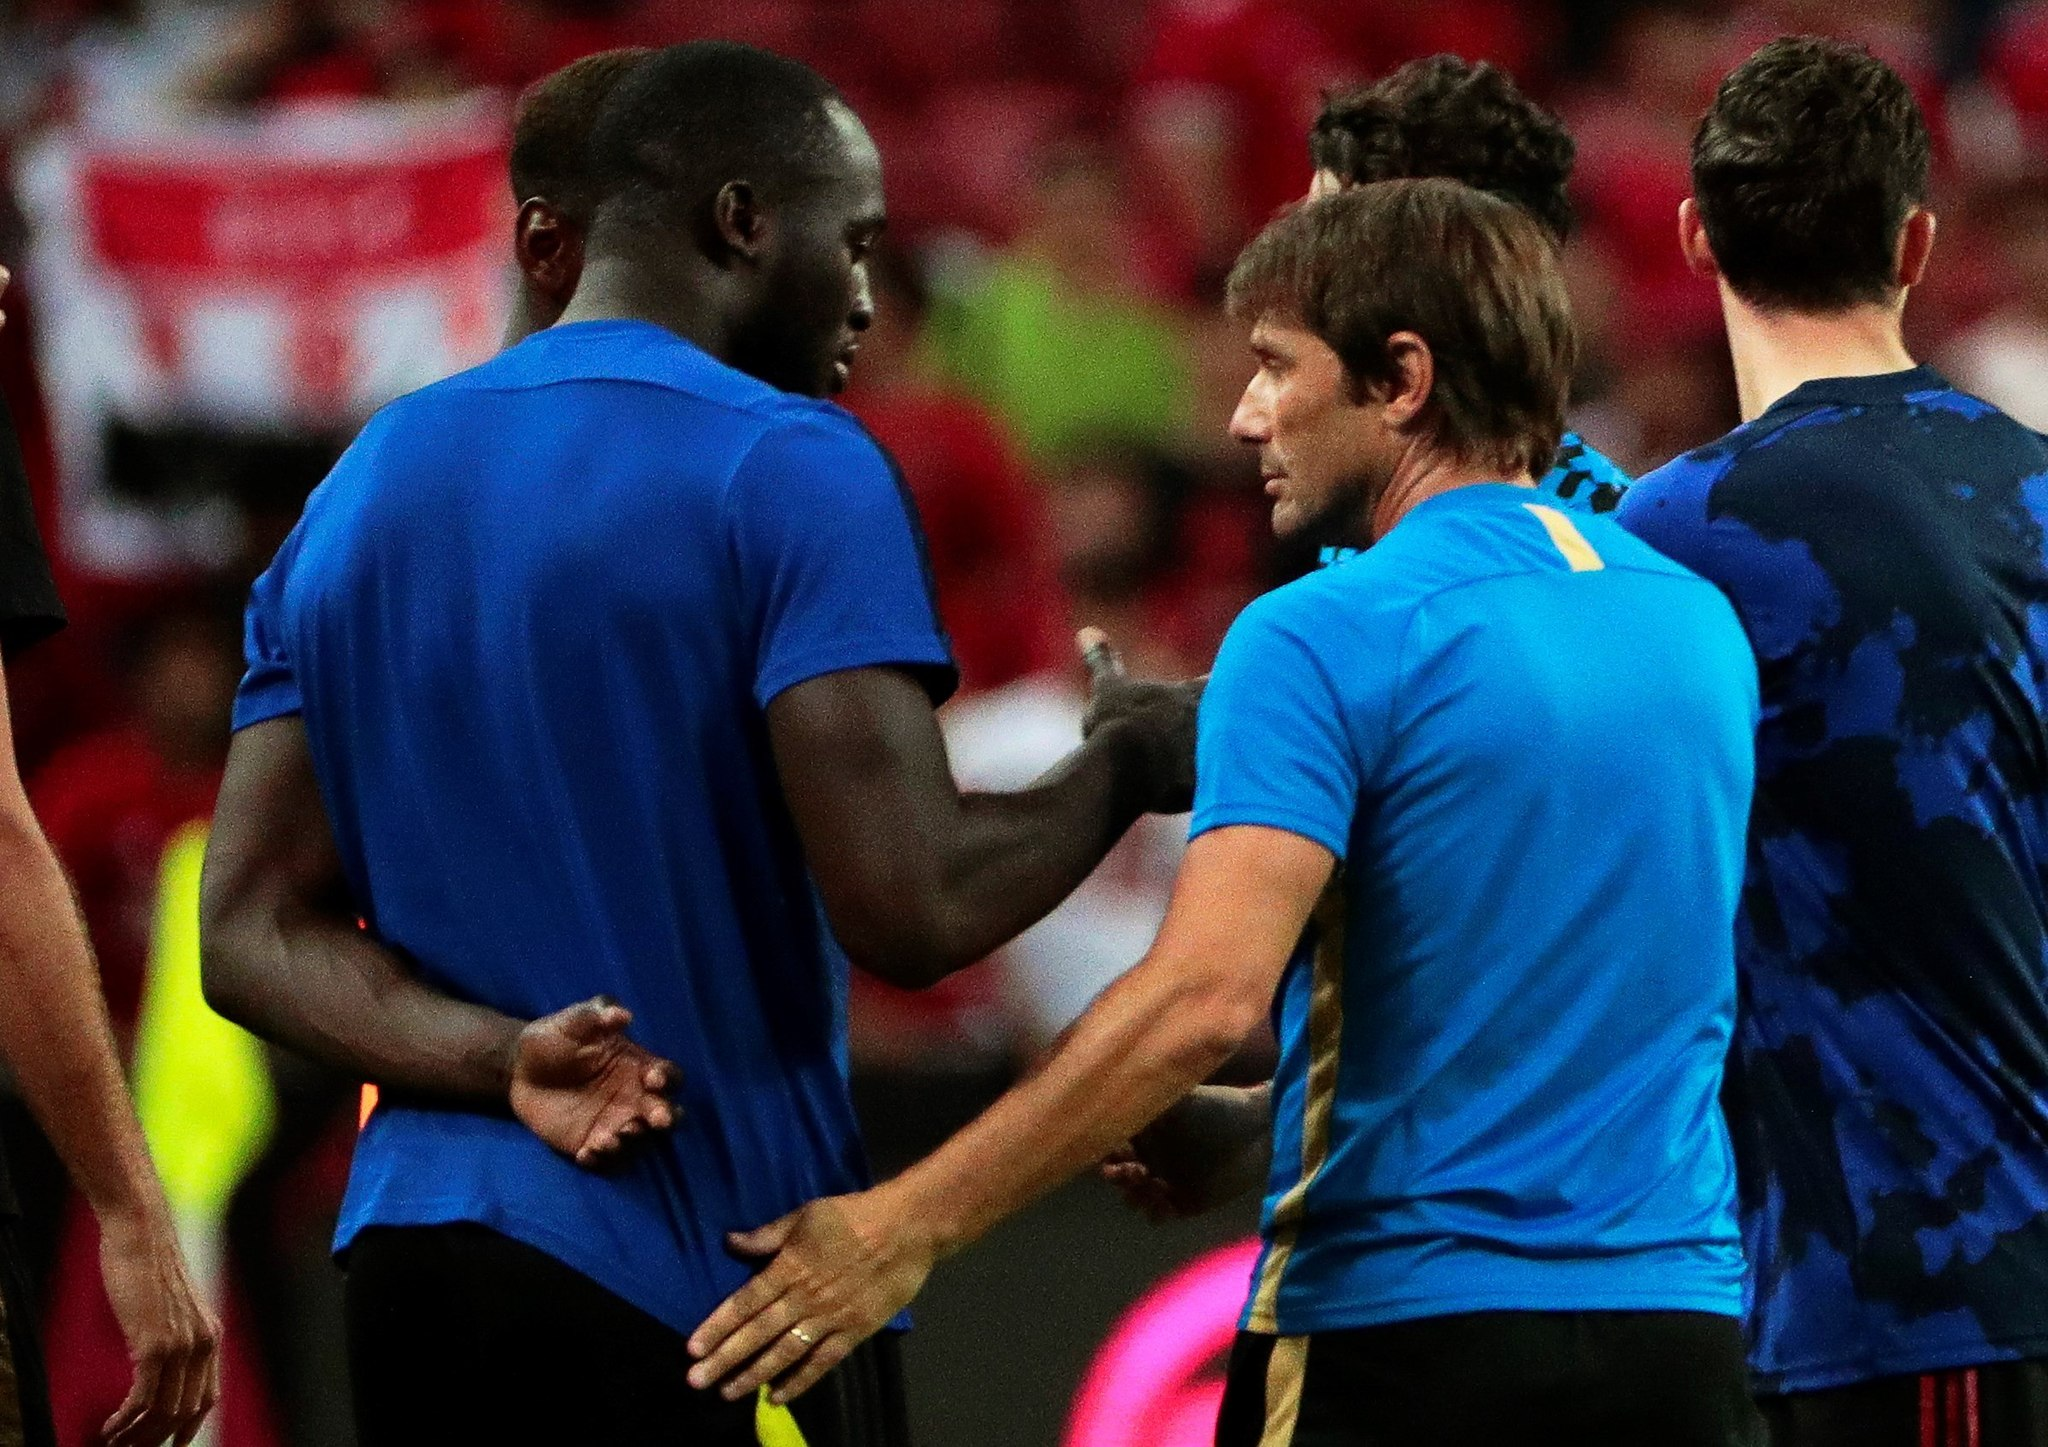 Singapore (Singapore), 20/07/2019.- (FILE) - Manchester Uniteds Romelu <HIT>Lukaku</HIT> (L) and Inters head coach Antonio Conte (R) react after the International Champions Cup soccer match between Manchester United and Inter Milan at the National Stadium in Singapore, 20 July 2019 (re-issued 08 August 2019). <HIT>Lukaku</HIT> is expected to join Inter after Manchester United accepted a £70 million (76 million) bid including add-ons. (Singapur, Roma, Singapur) EFE/EPA/WALLACE WOON